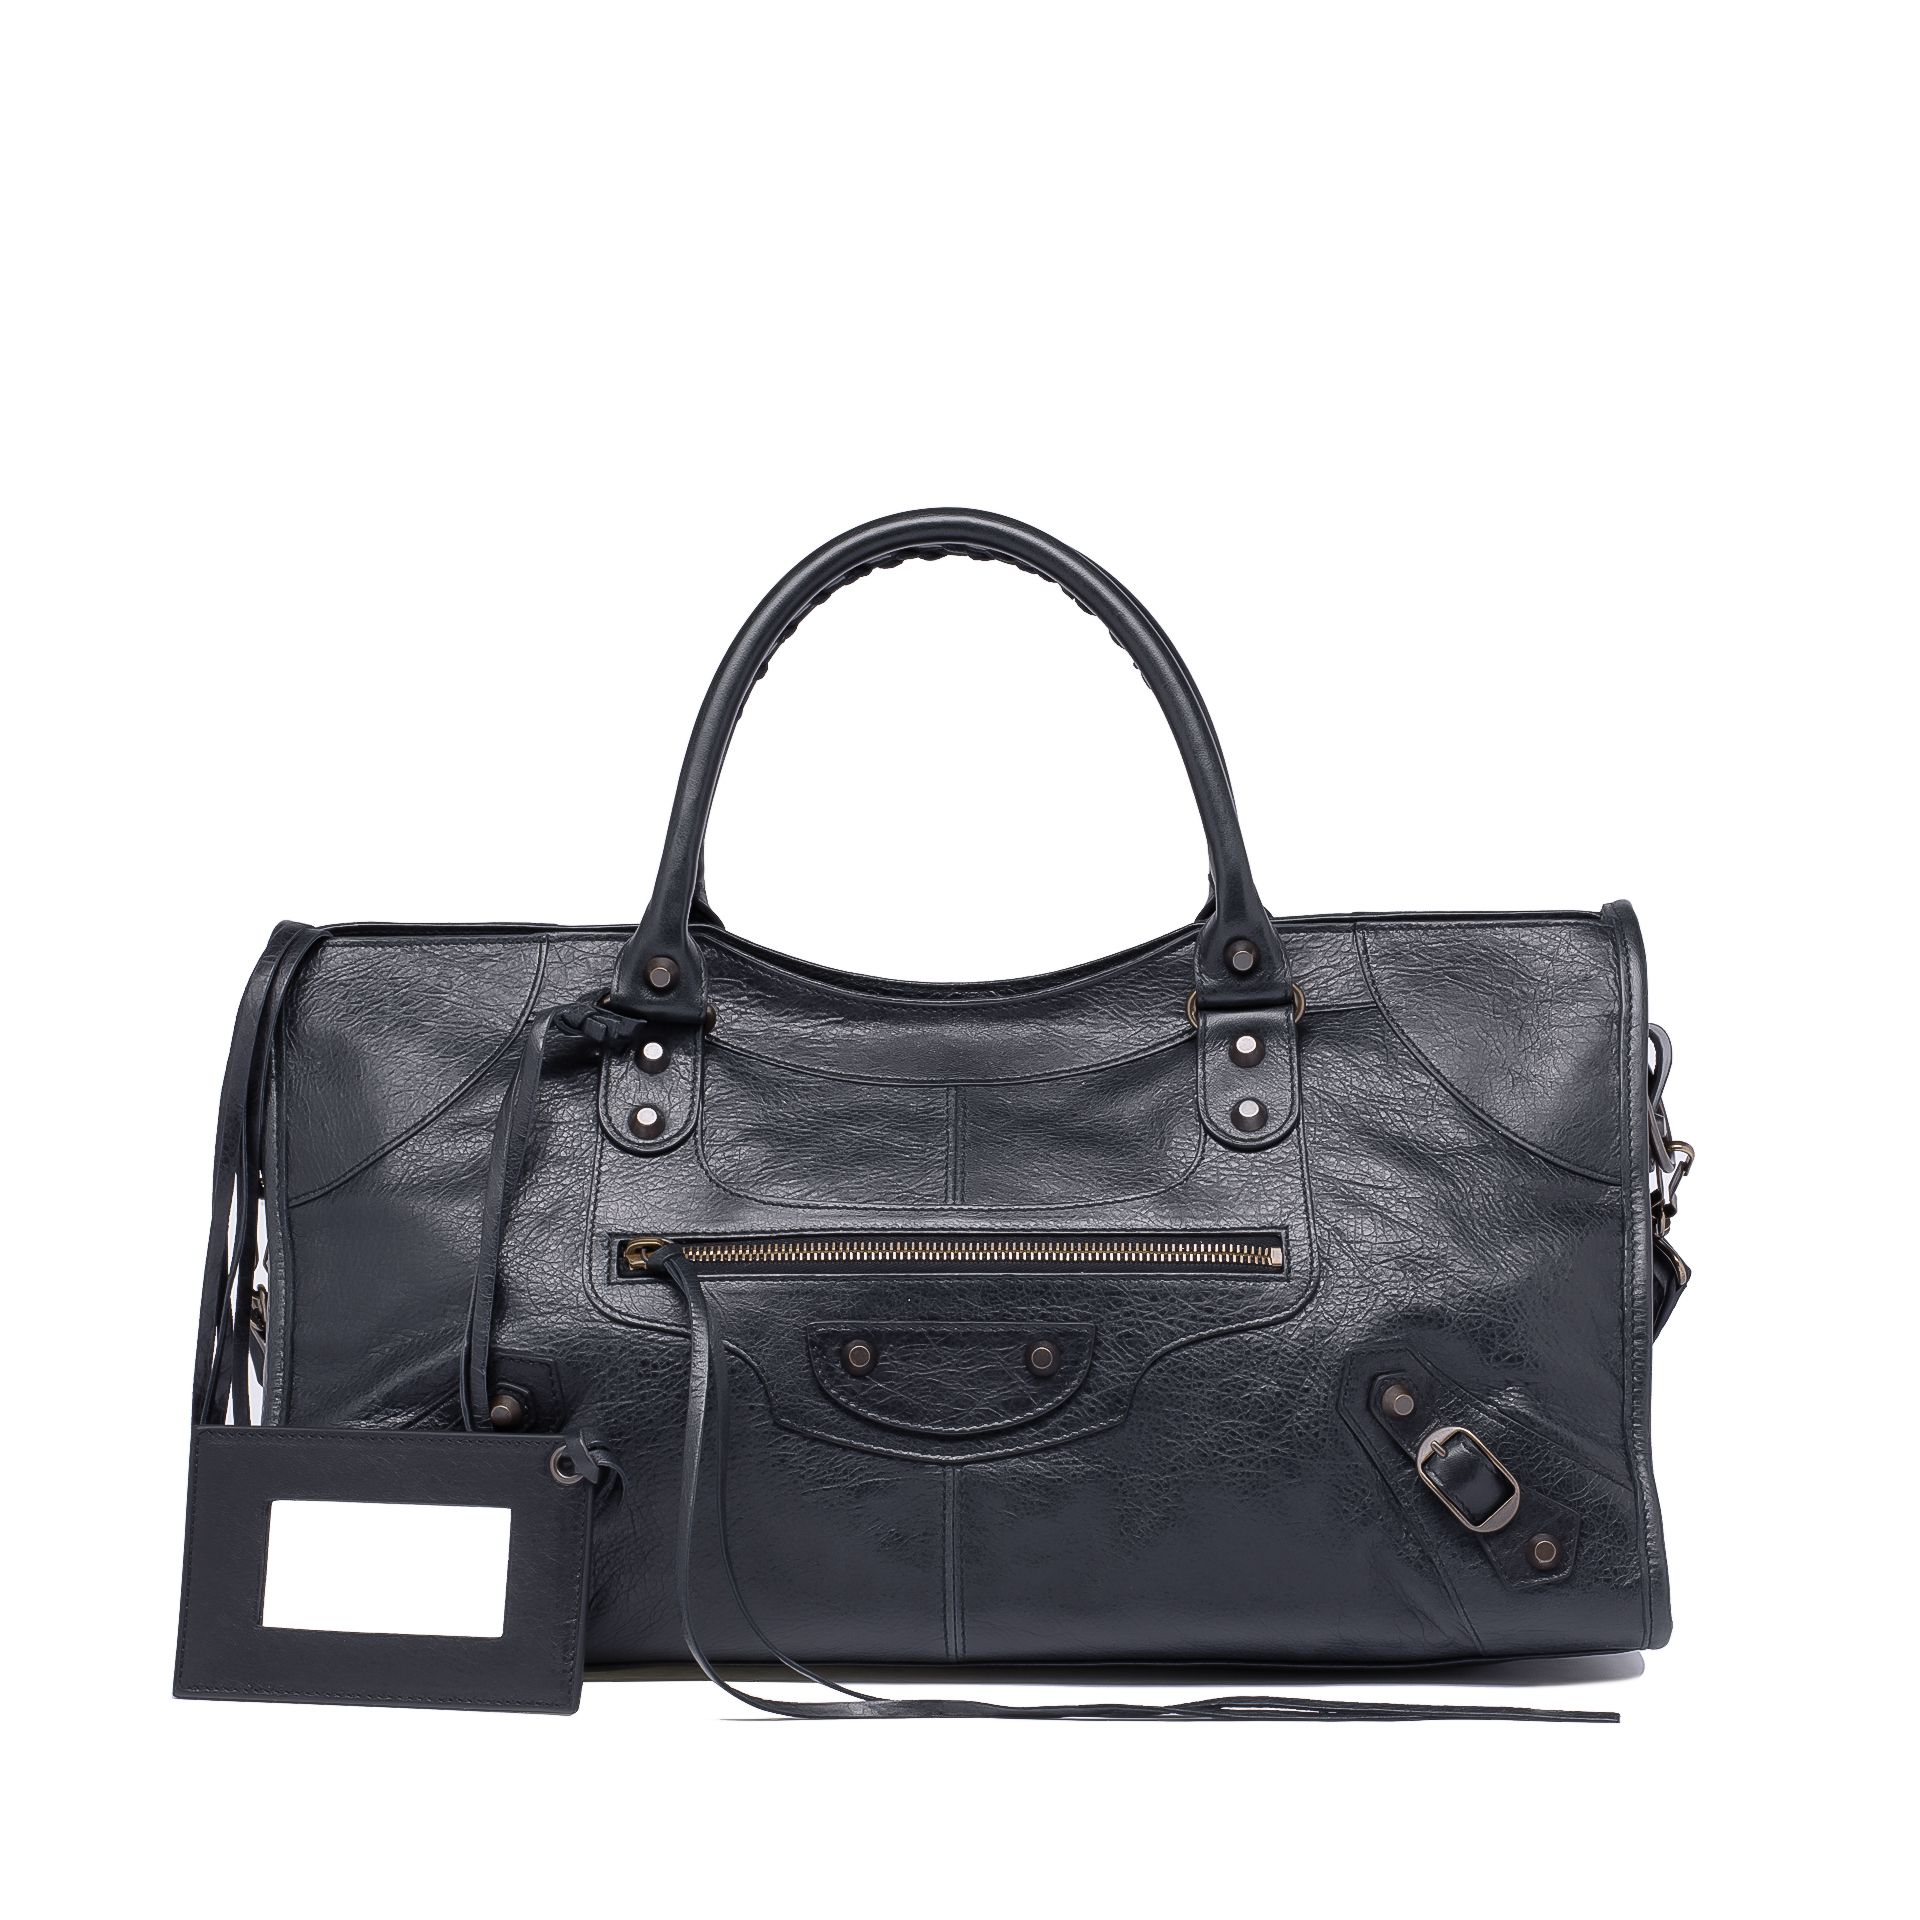 Women's BALENCIAGA Top handle bag - Handbags - Shop on the Official Online Store